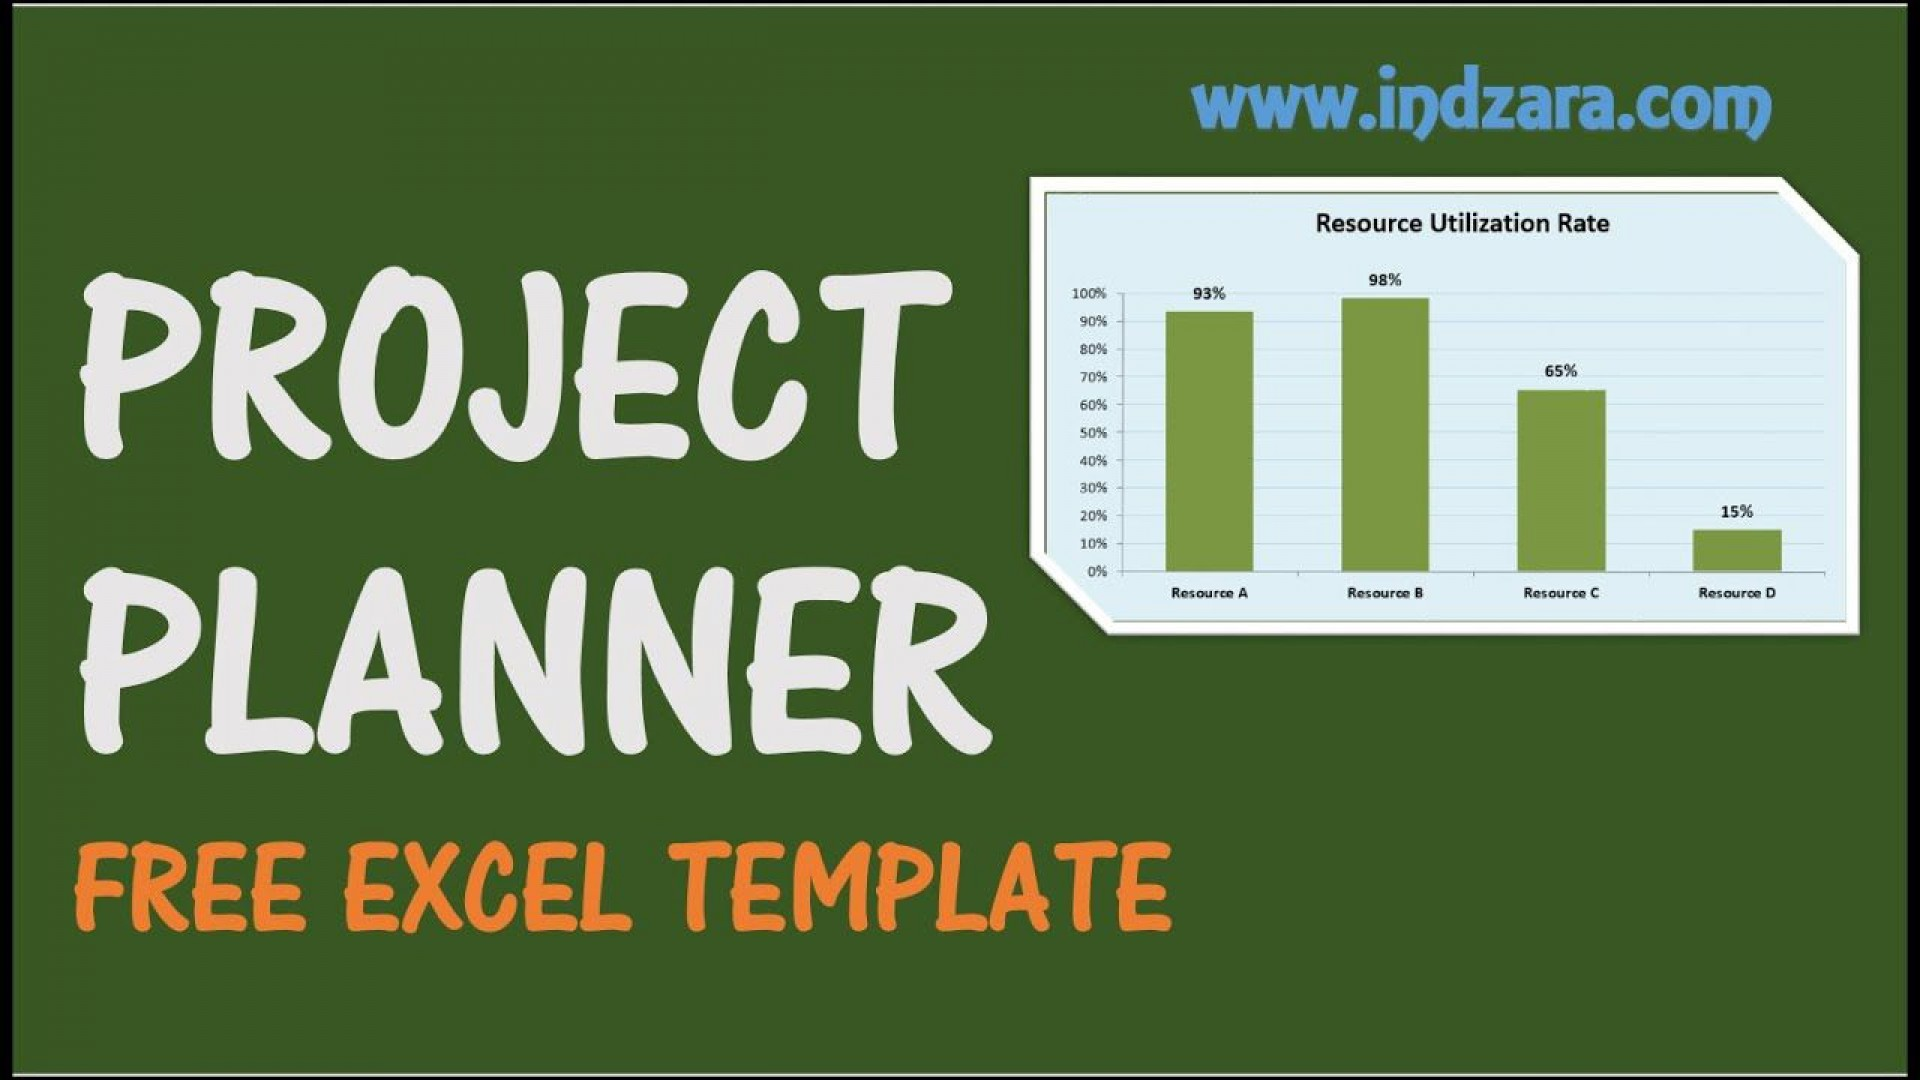 006 Frightening Project Management Template Free Excel Design  Portfolio Construction Tracking1920